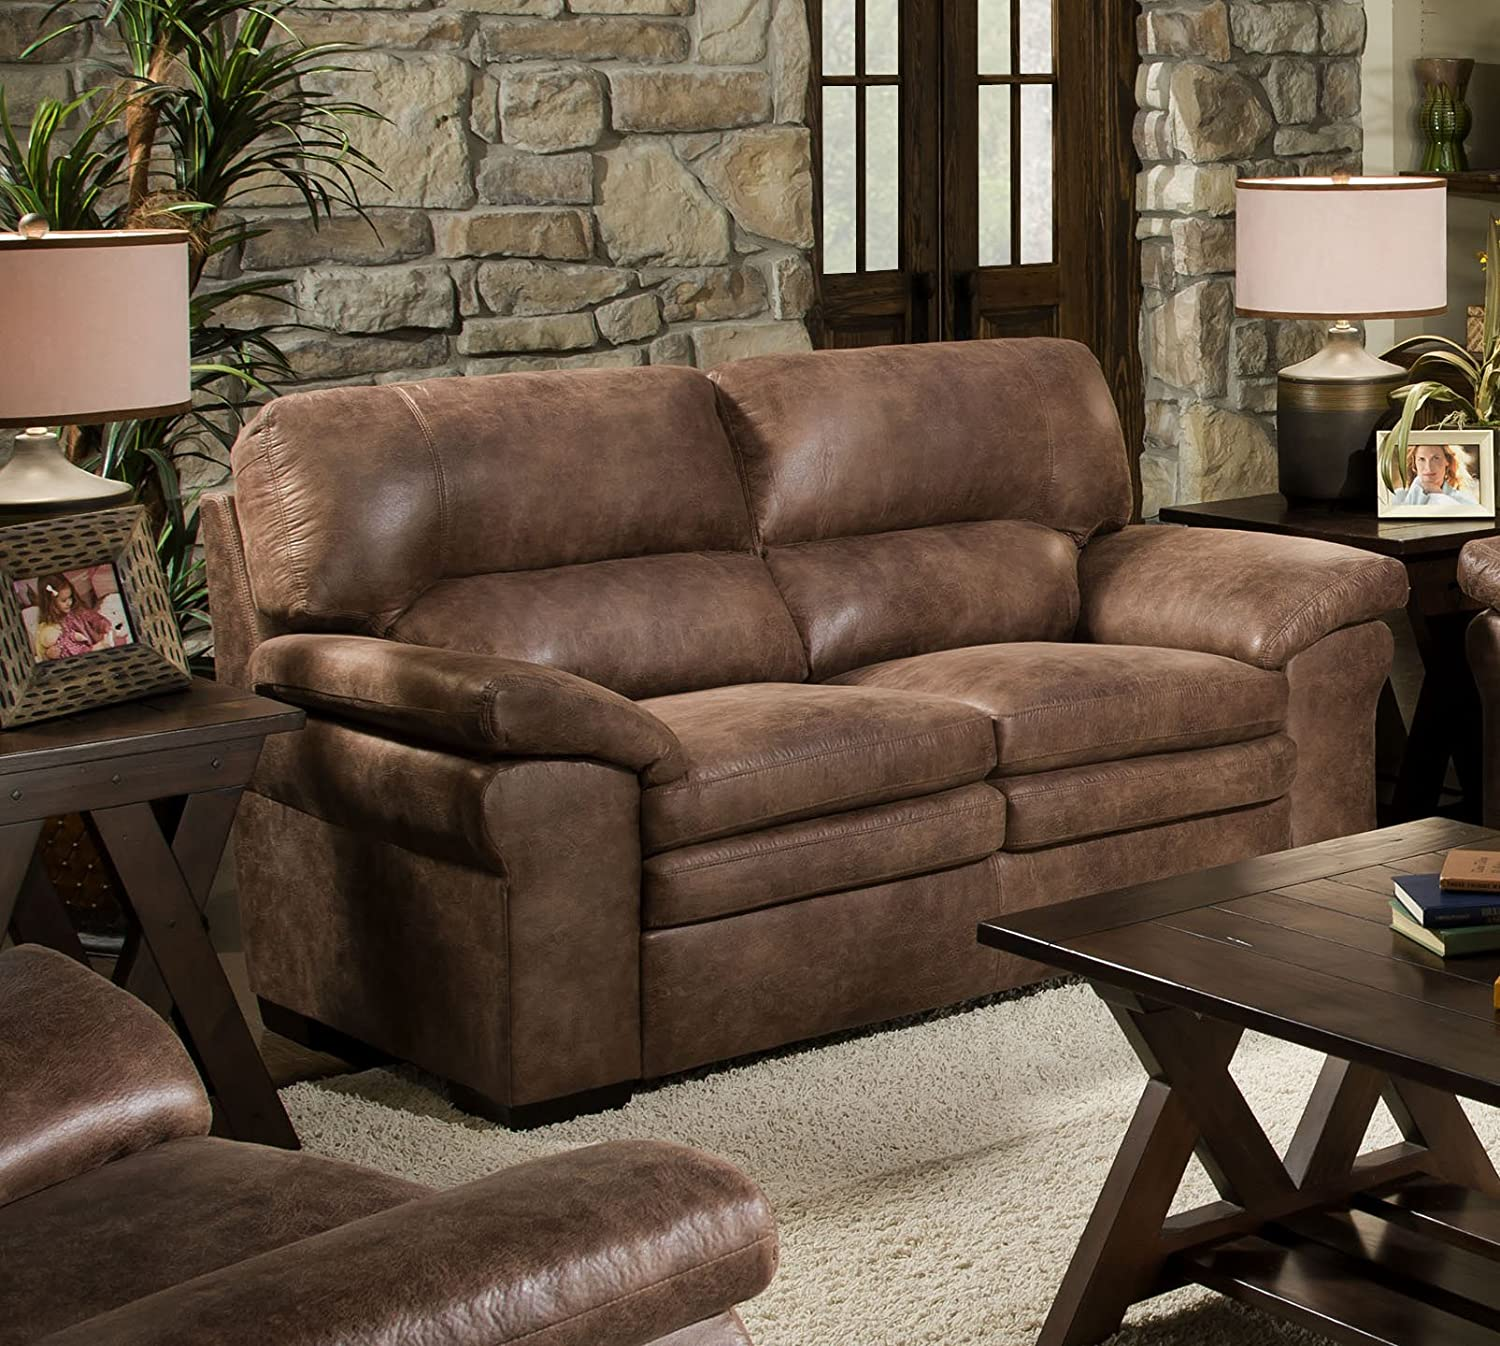 Chelsea Home Furniture Montgomery Loveseat - Shogun Mocha